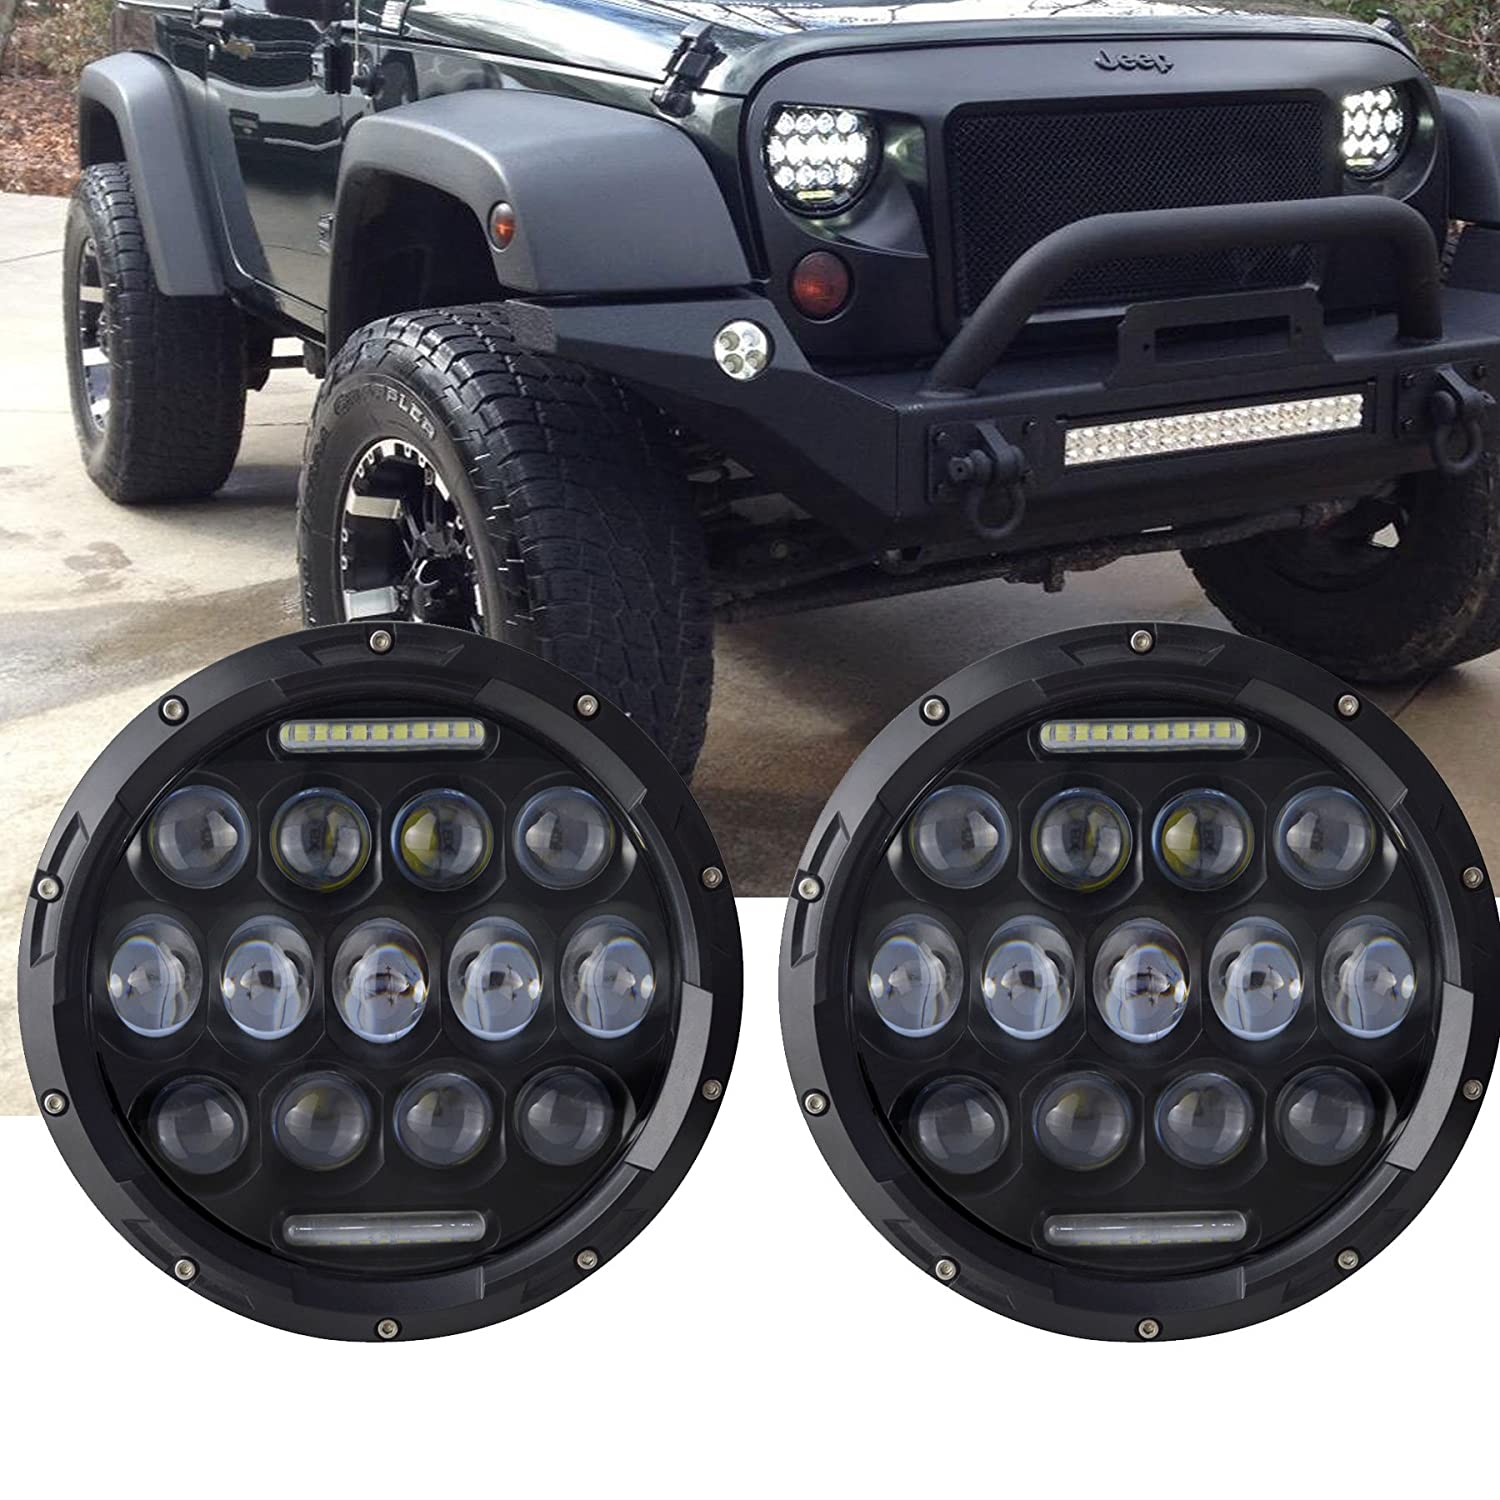 81tSg7yqM9L._SL1500_ turbo pair 7 inch round led headlight with drl hi lo beam for jeep